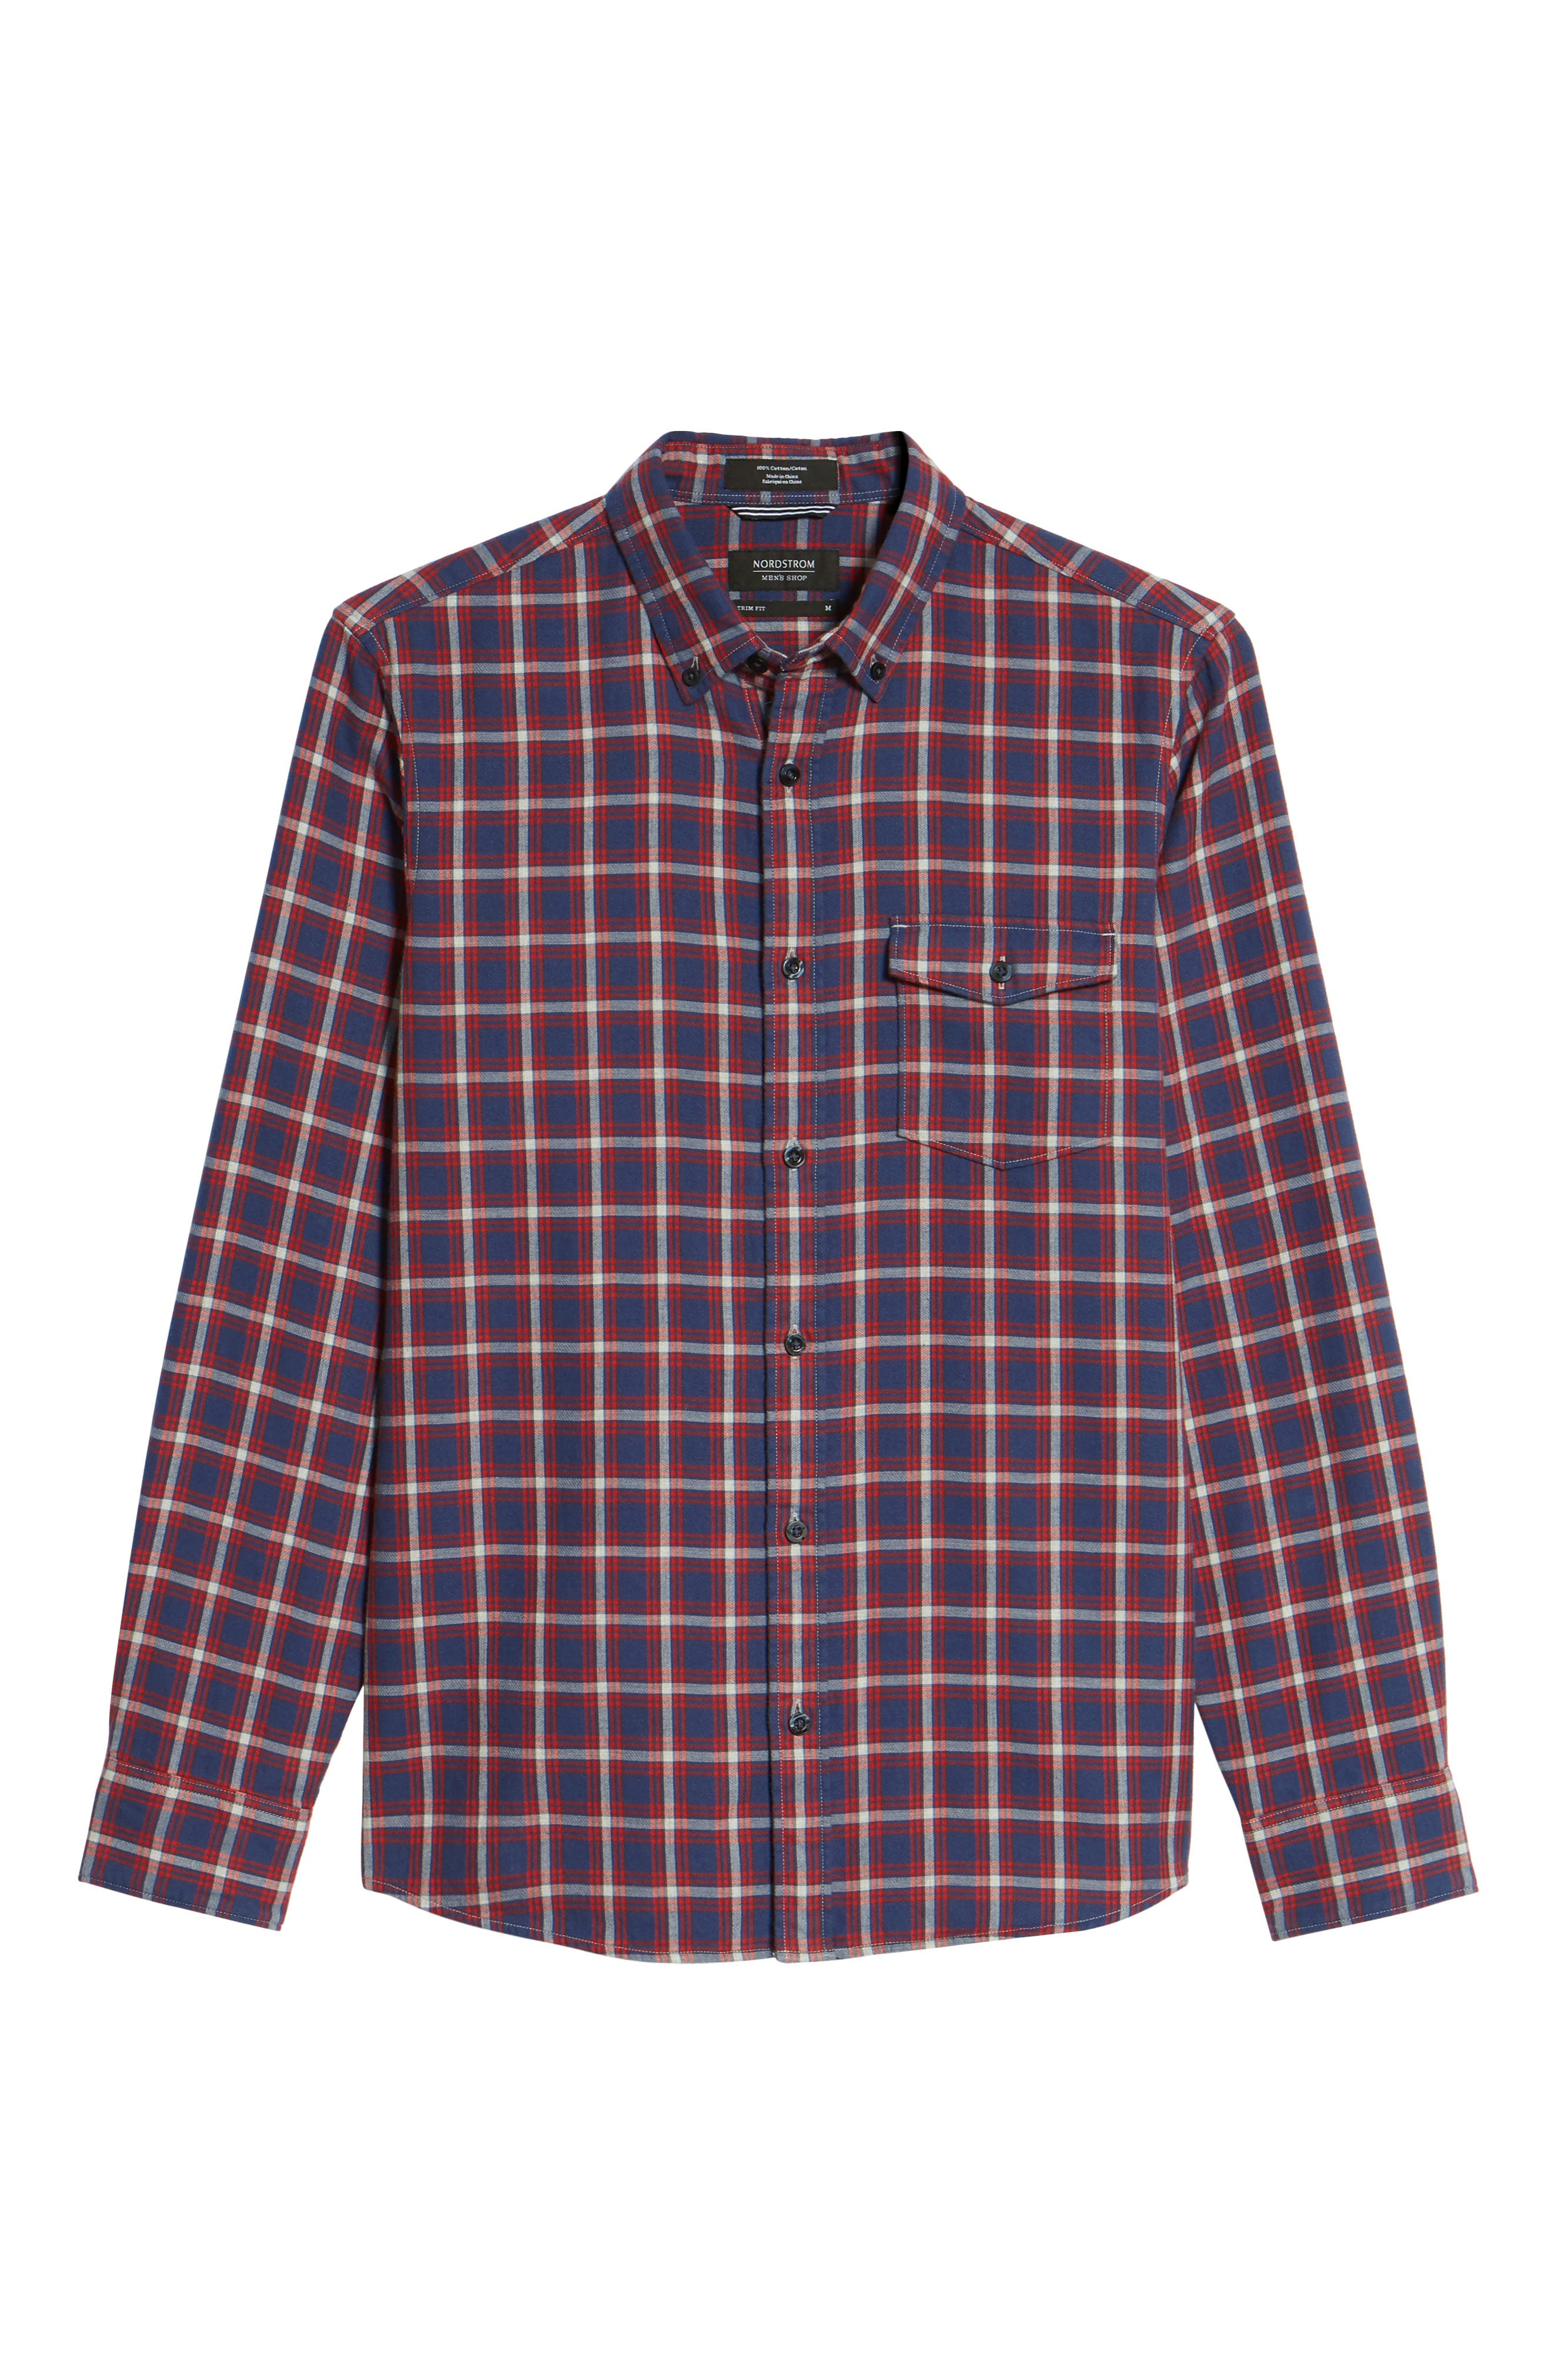 Trim Fit Duofold Check Sport Shirt,                             Alternate thumbnail 6, color,                             Navy Iris Red Plaid Duofold